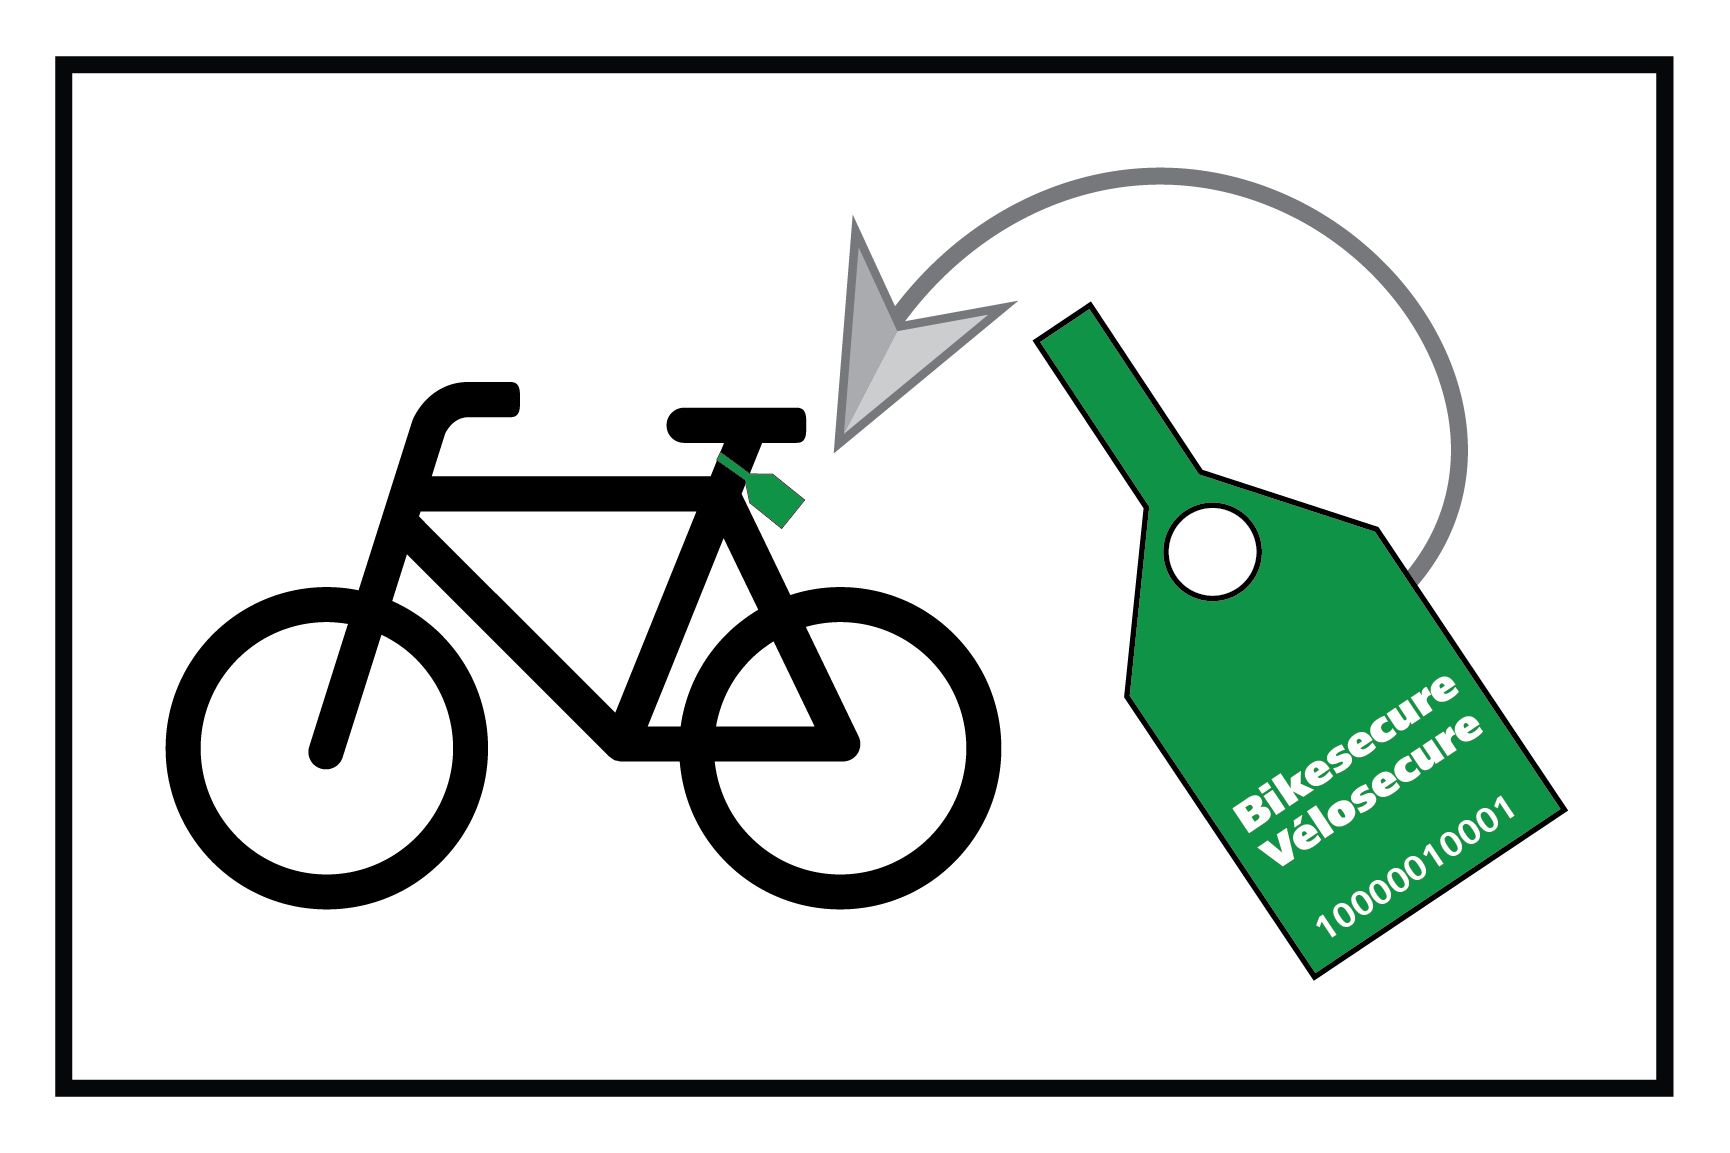 A diagram showing where to place Bikesecure tags onto a bike.